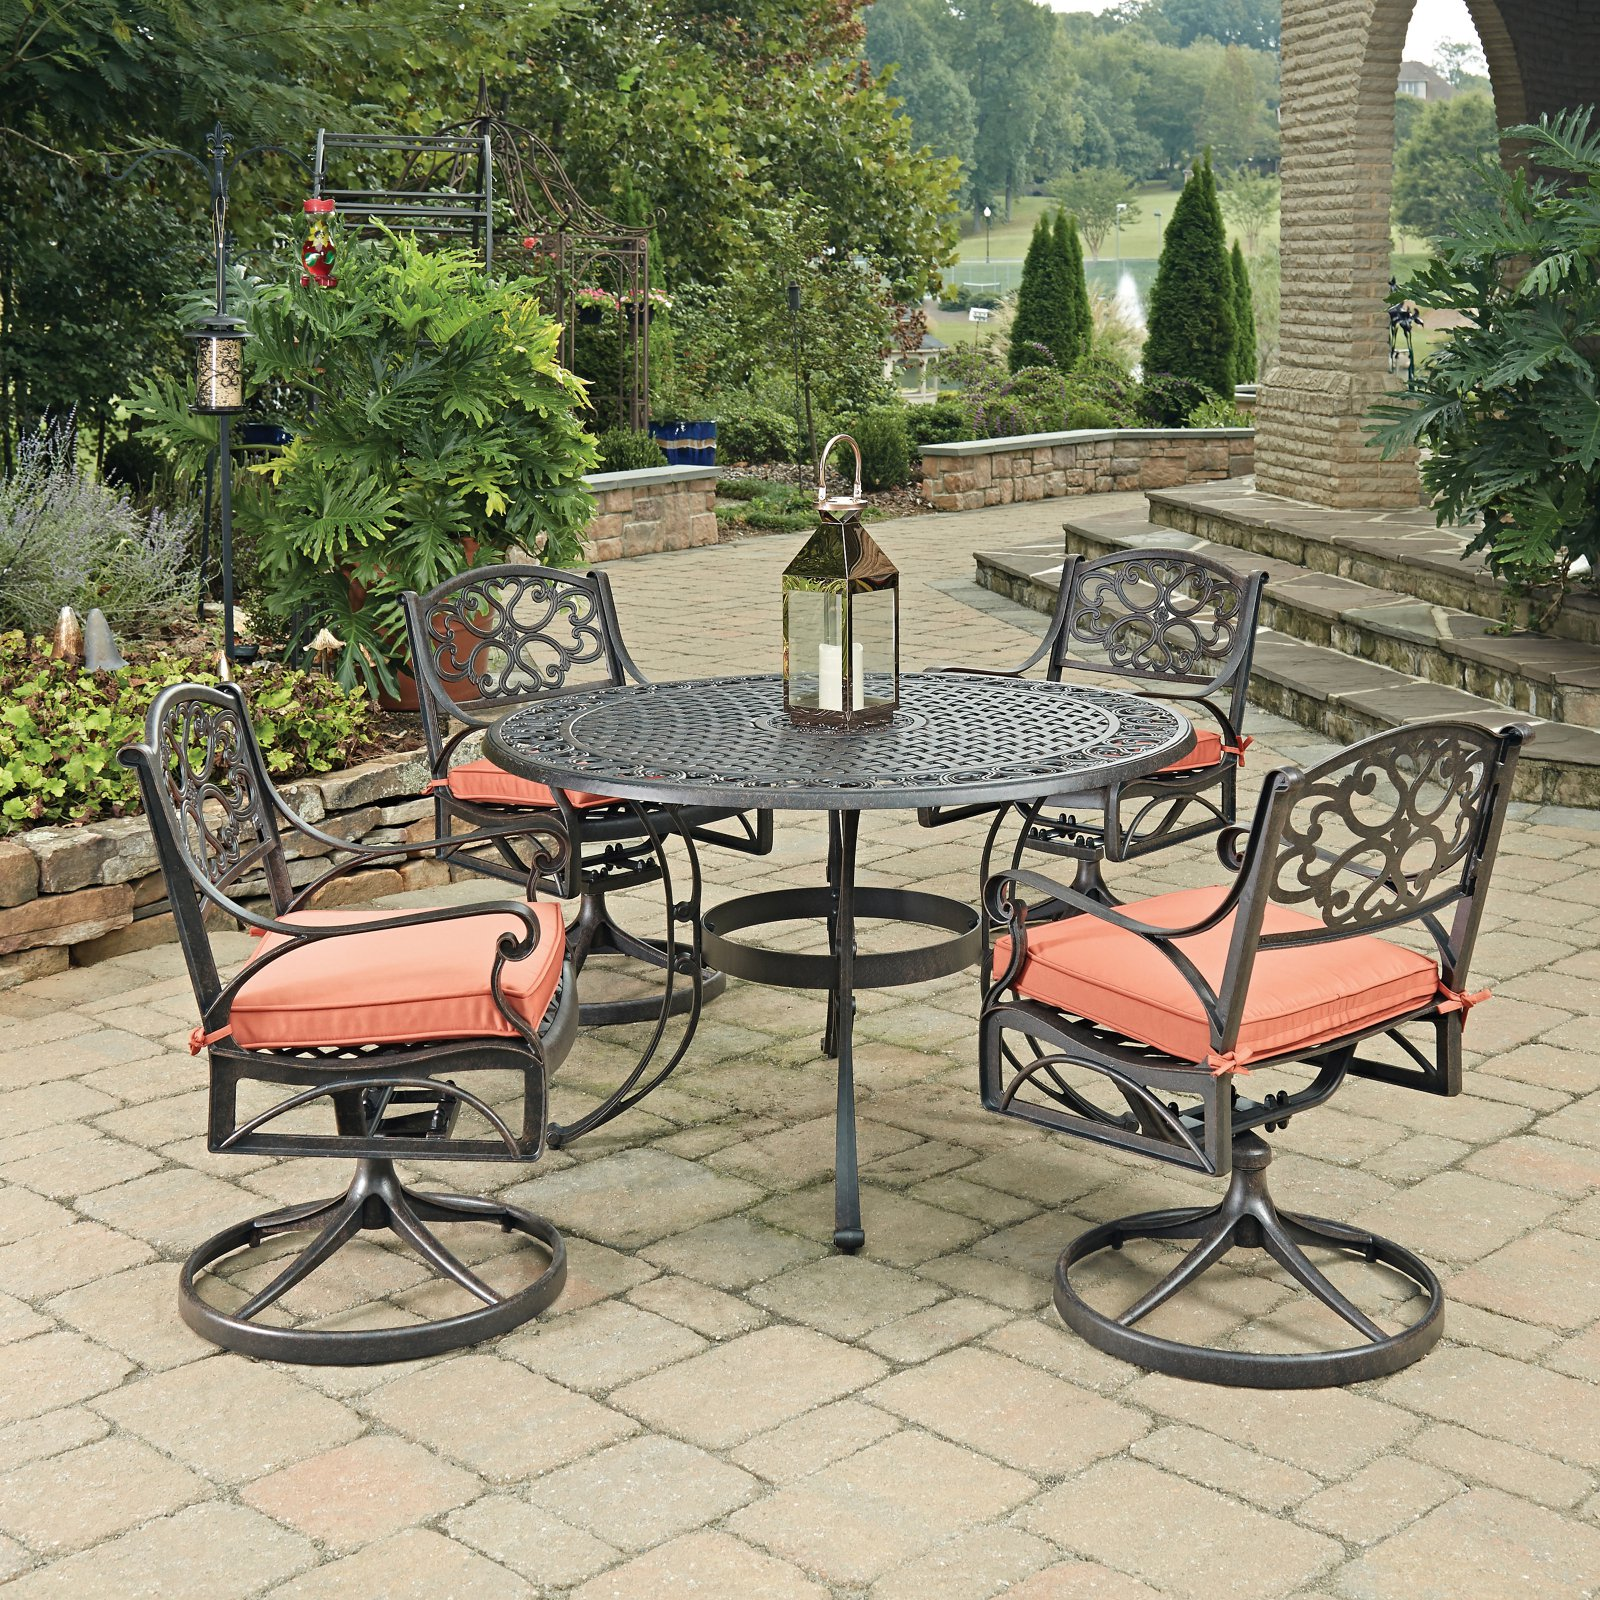 Biscayne Rust Bronze Round 5 Pc Outdoor Dining Table & 4 Swivel Rocking Chairs with Cushions